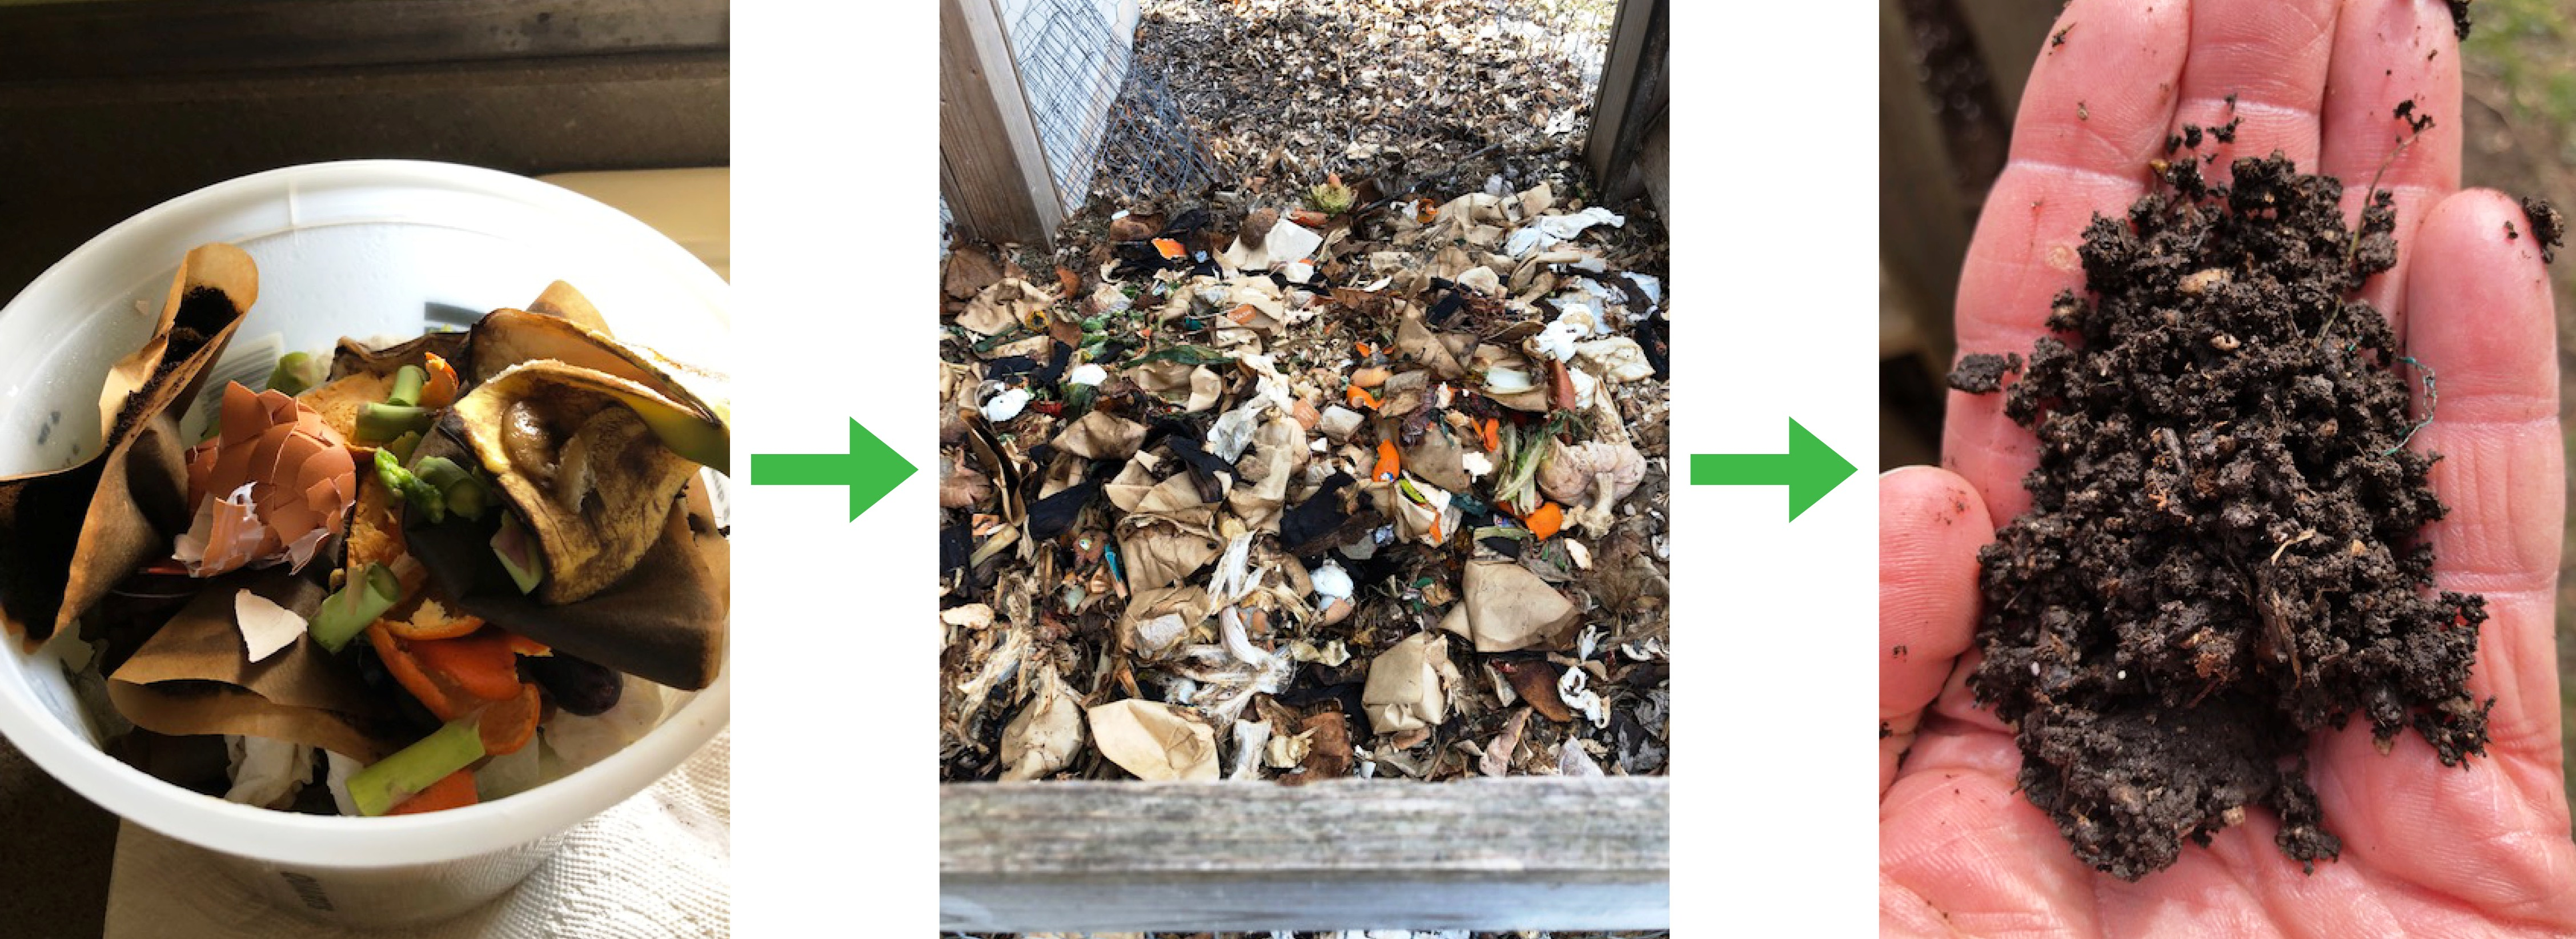 Learn to Compost: From Kitchen to Garden